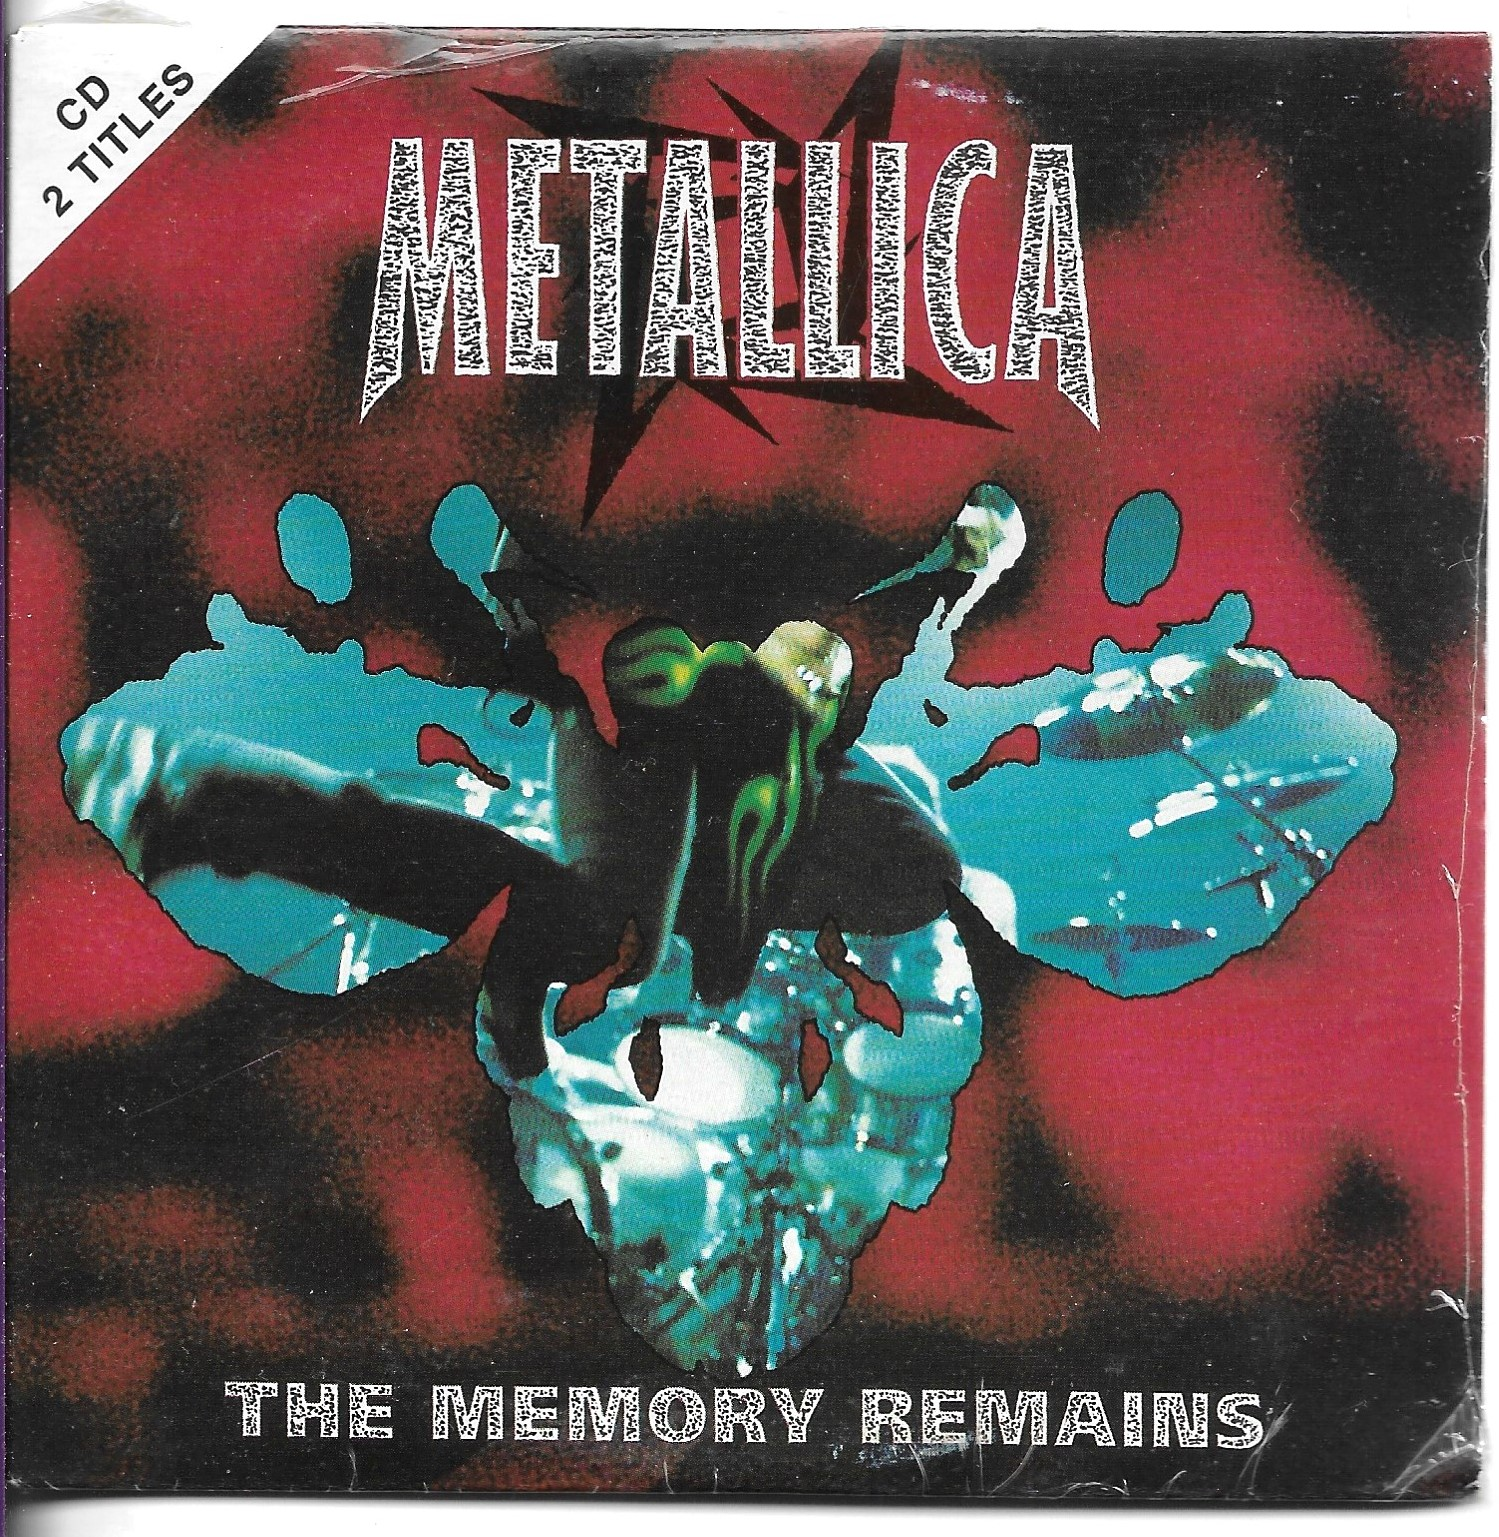 METALLICA - Marianne FAITHFULL - The Memory Remains 2-track Card Sleeve